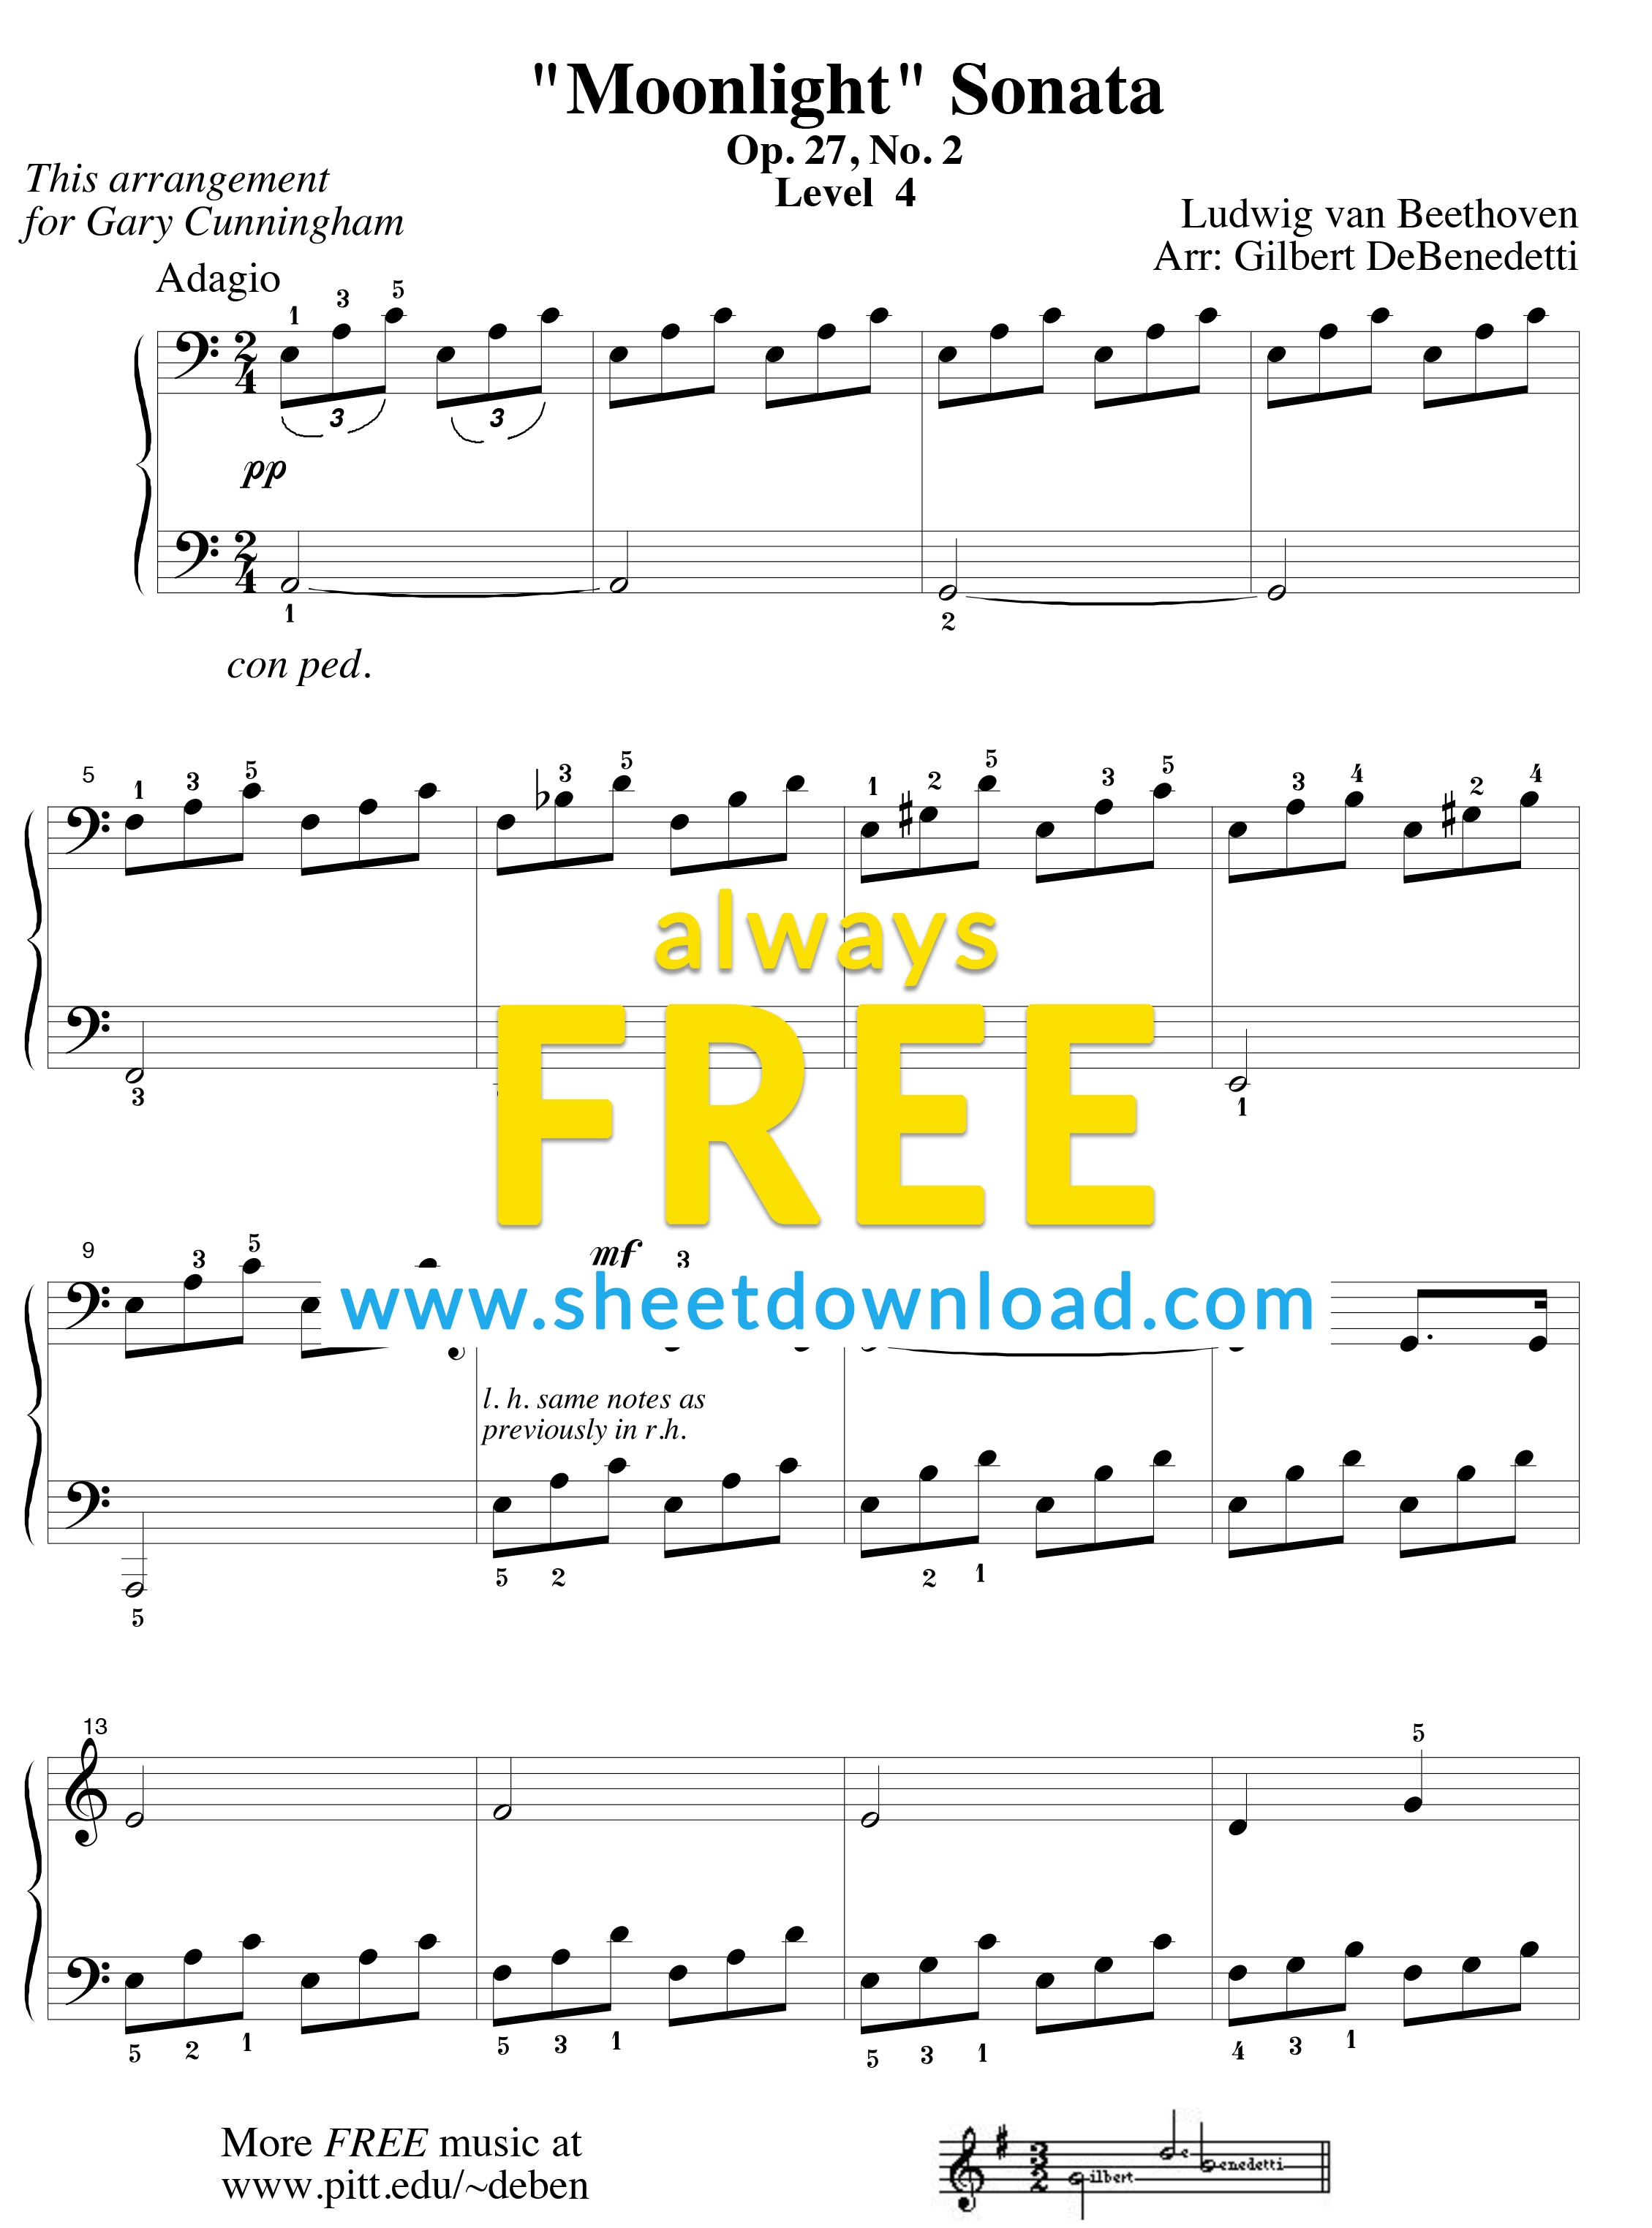 Top 100 Popular Piano Sheets Downloaded From Sheetdownload - Free Printable Sheet Music For Piano